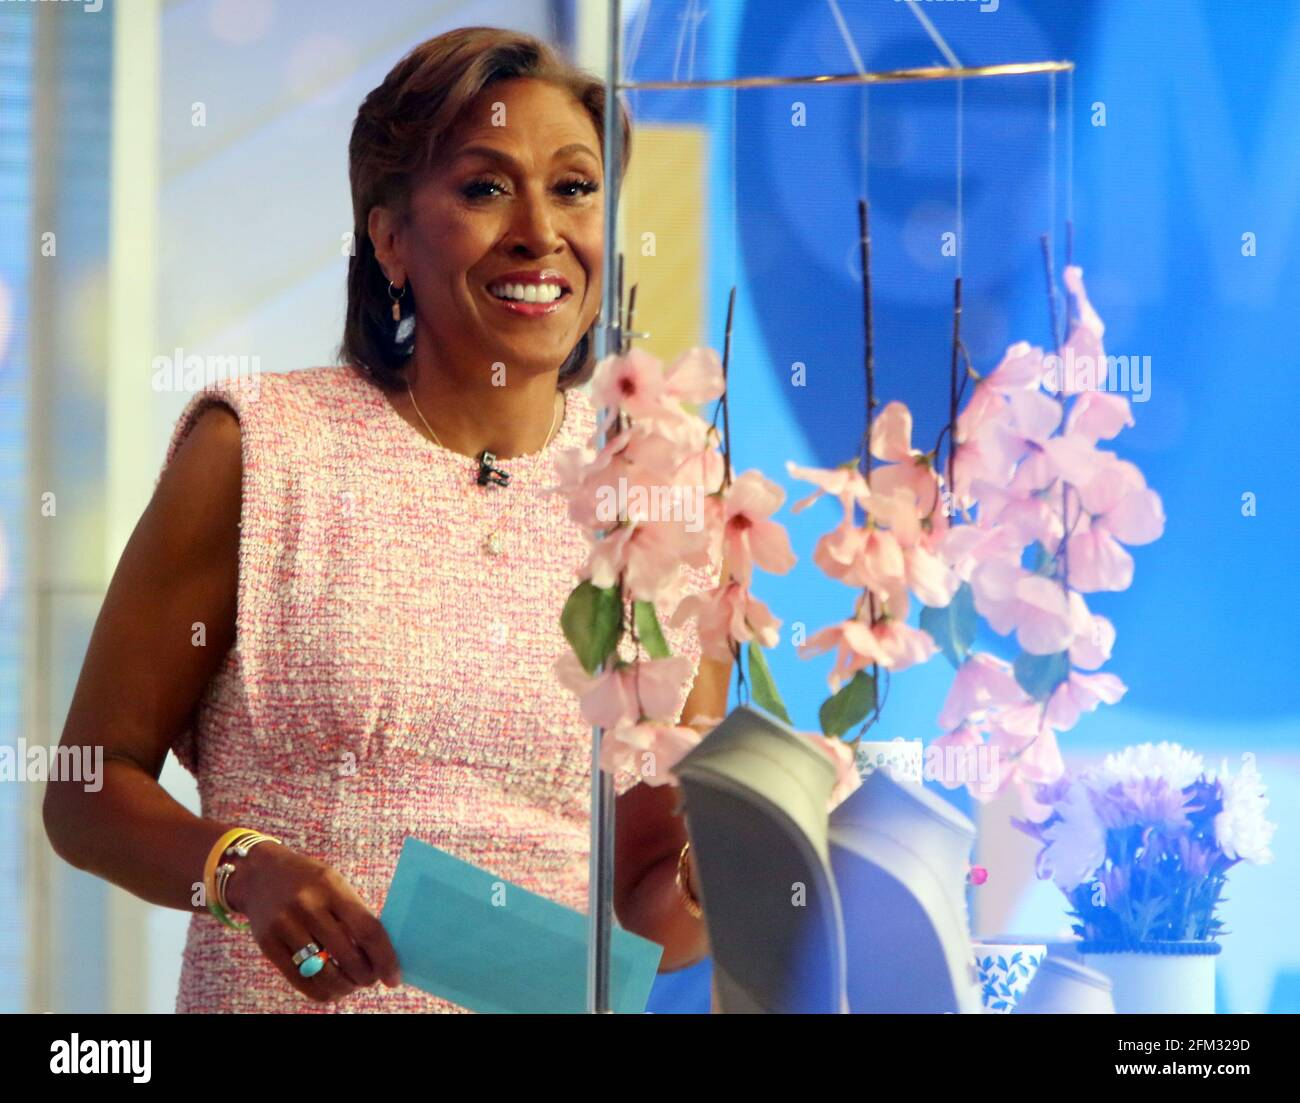 New York, NY, USA. 5th May, 2021. Robin Roberts on the set of Good Morning America in New York City on May 05, 2021. Credit: Rw/Media Punch/Alamy Live News Stock Photo